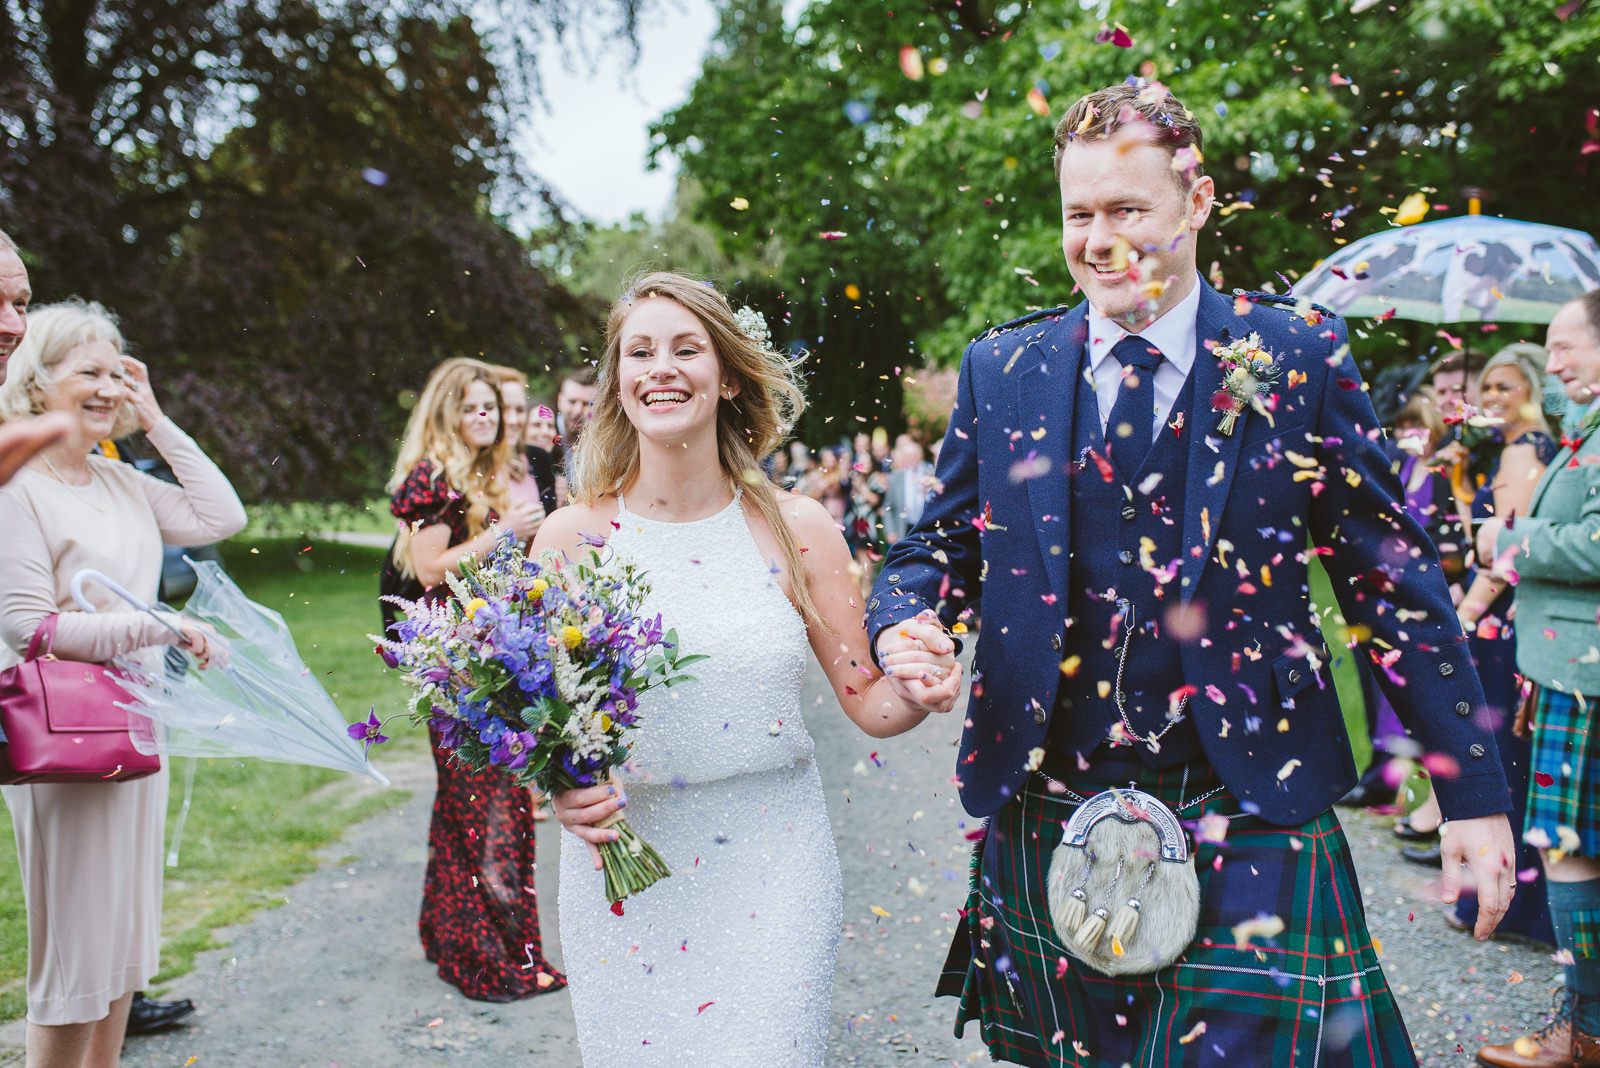 What confetti looks best in wedding photos?